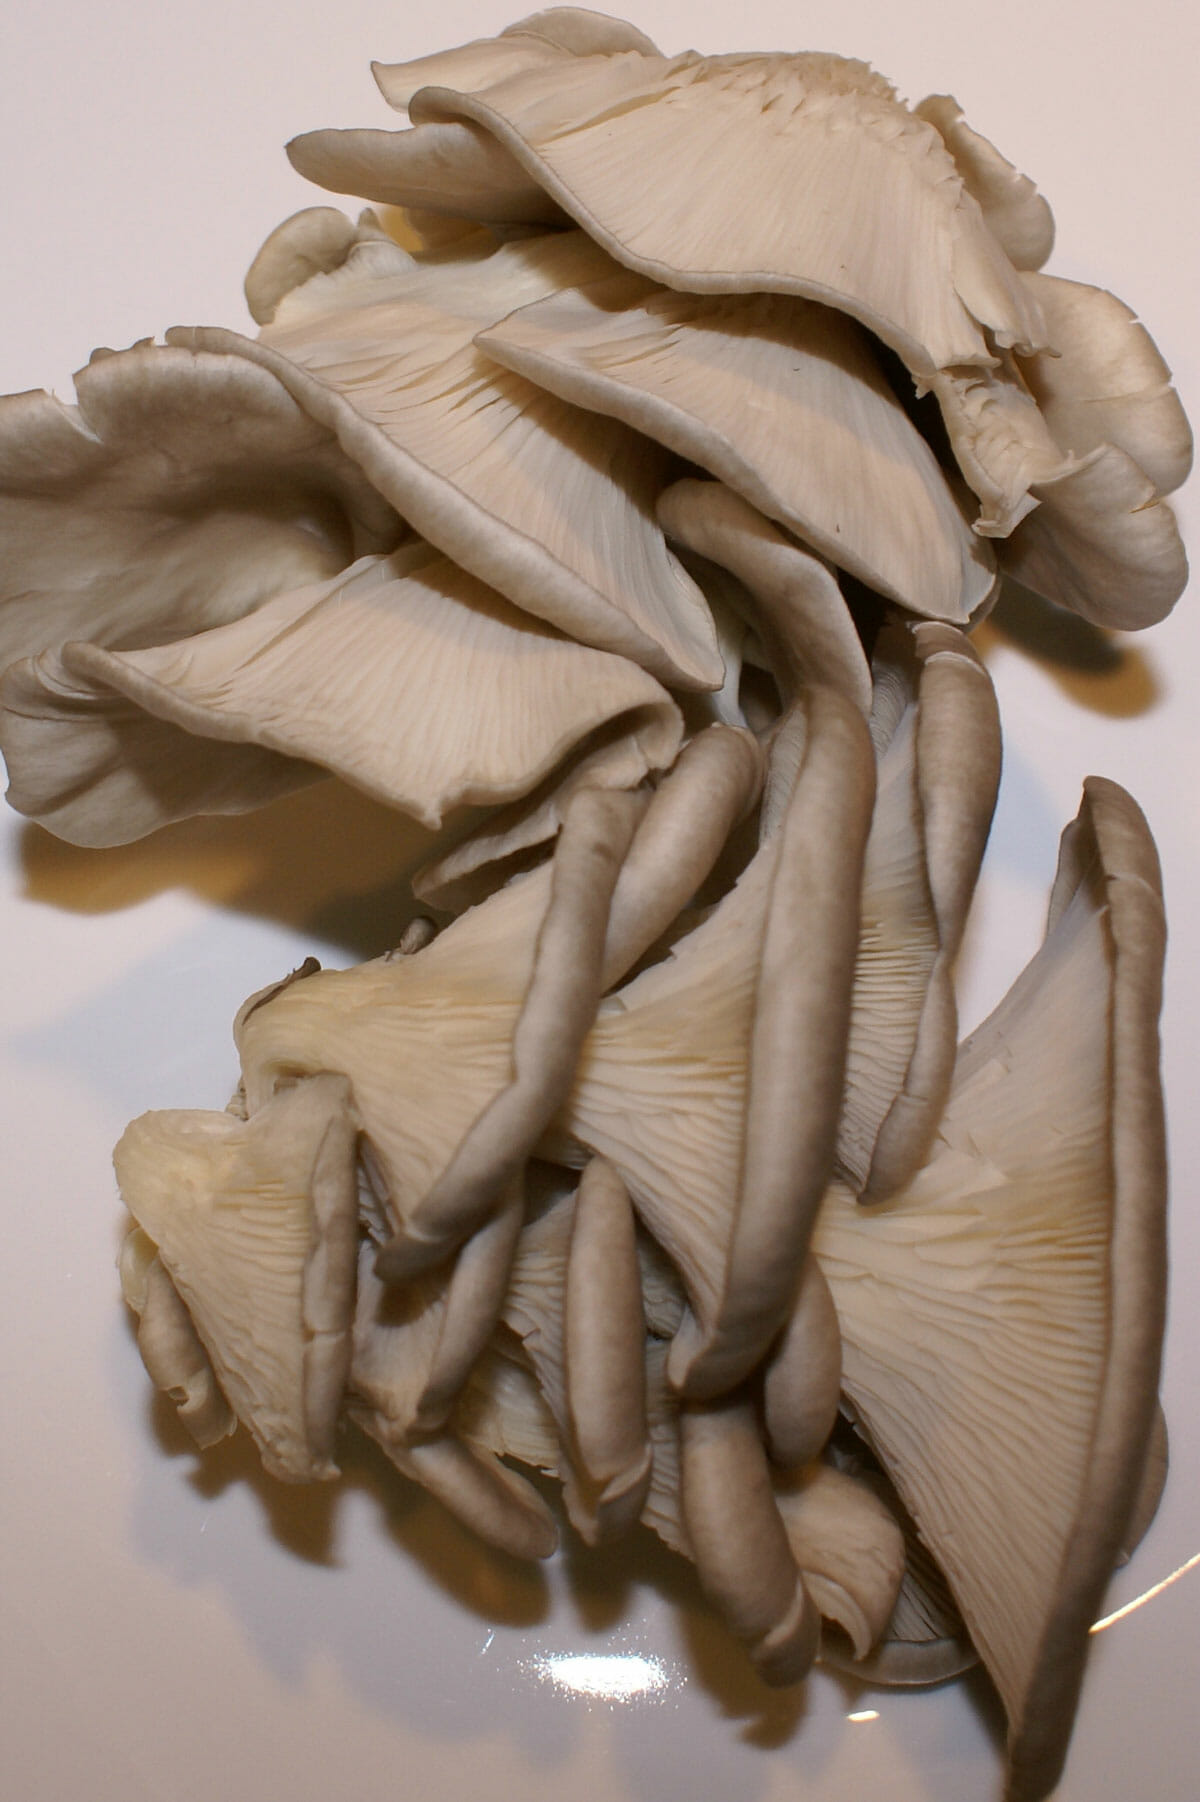 Oyster mushrooms are referred to as exotics.